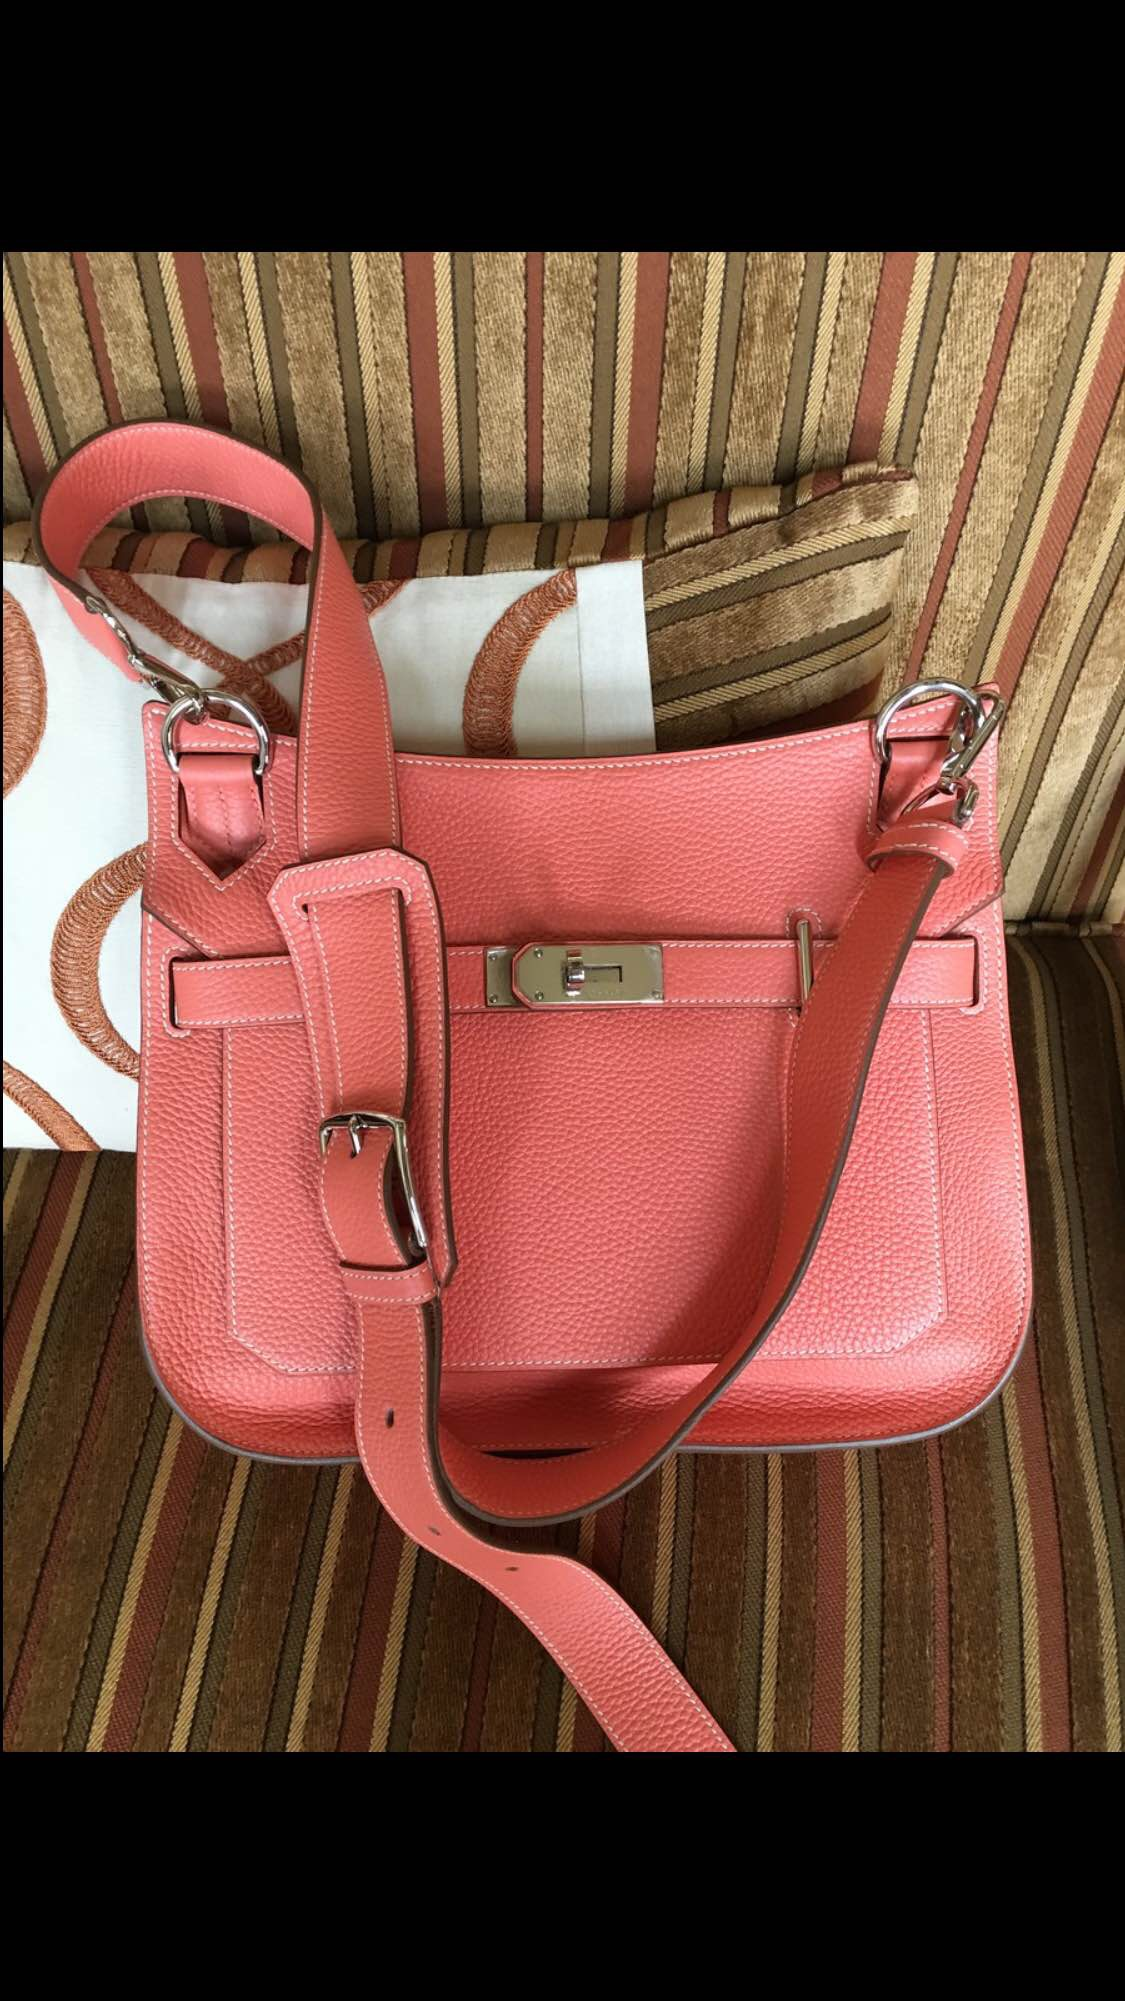 tasche hermes - hermes garden party medium fire orange/fire orange